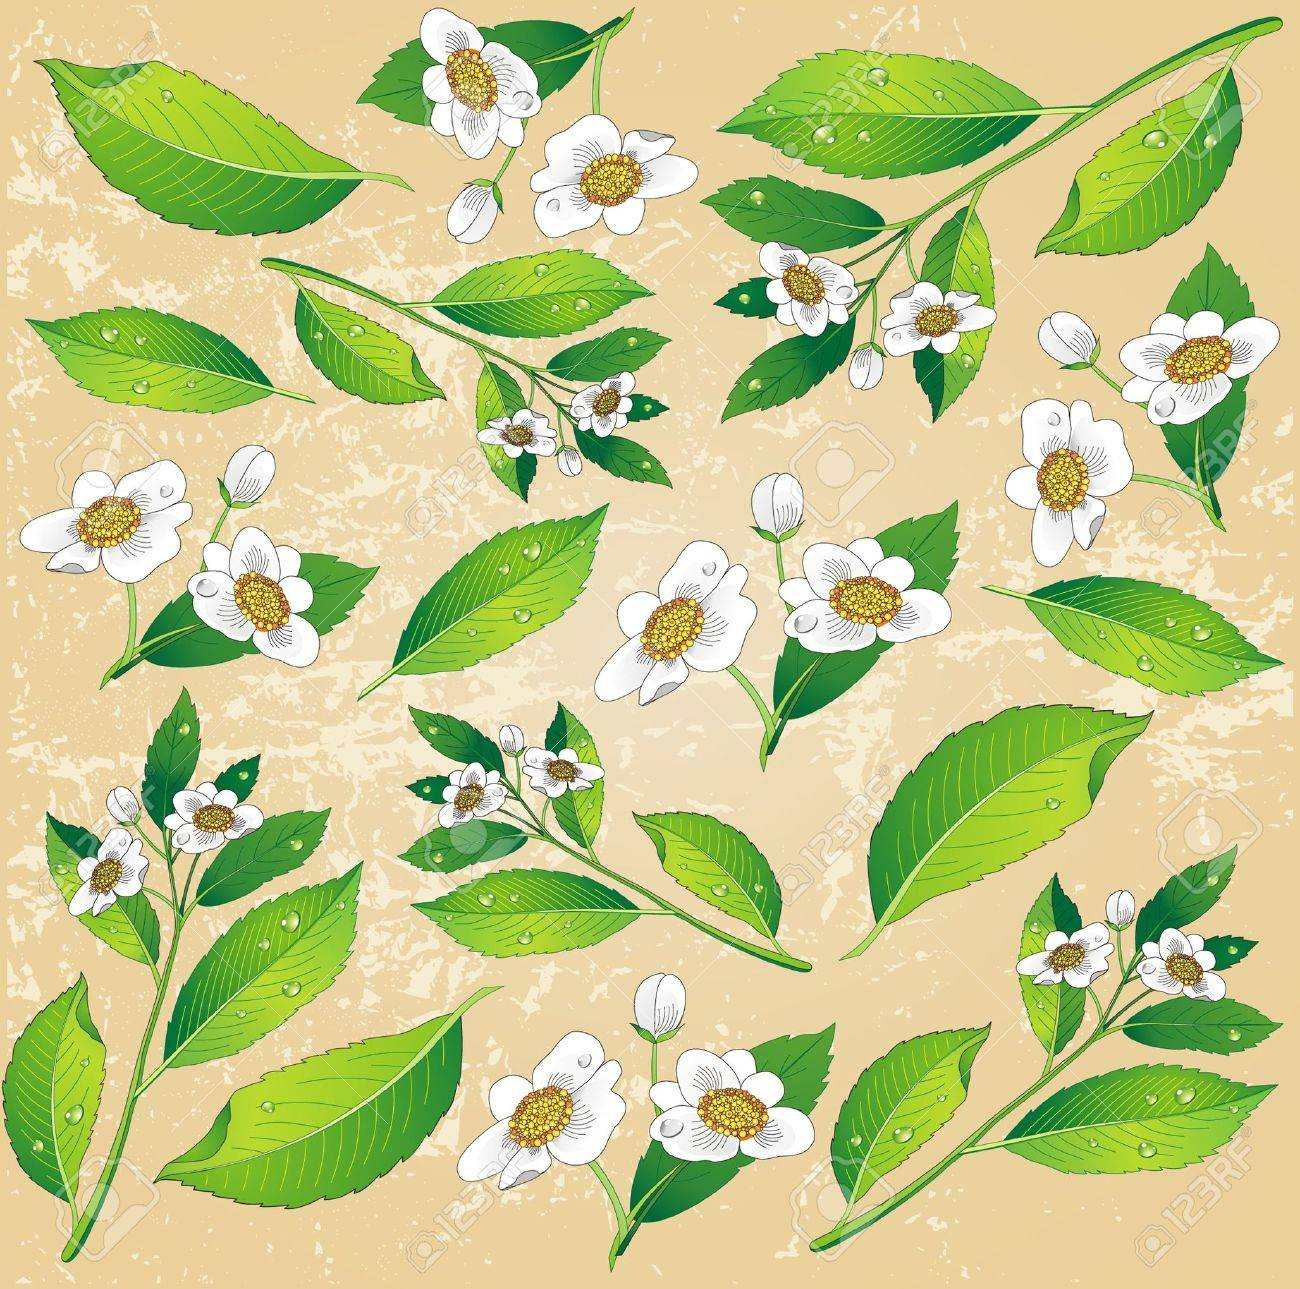 Background With A Painted Green Tea Leaves And White Flowers Royalty Free Cliparts Vectors And Stock Illustration Image 10345773